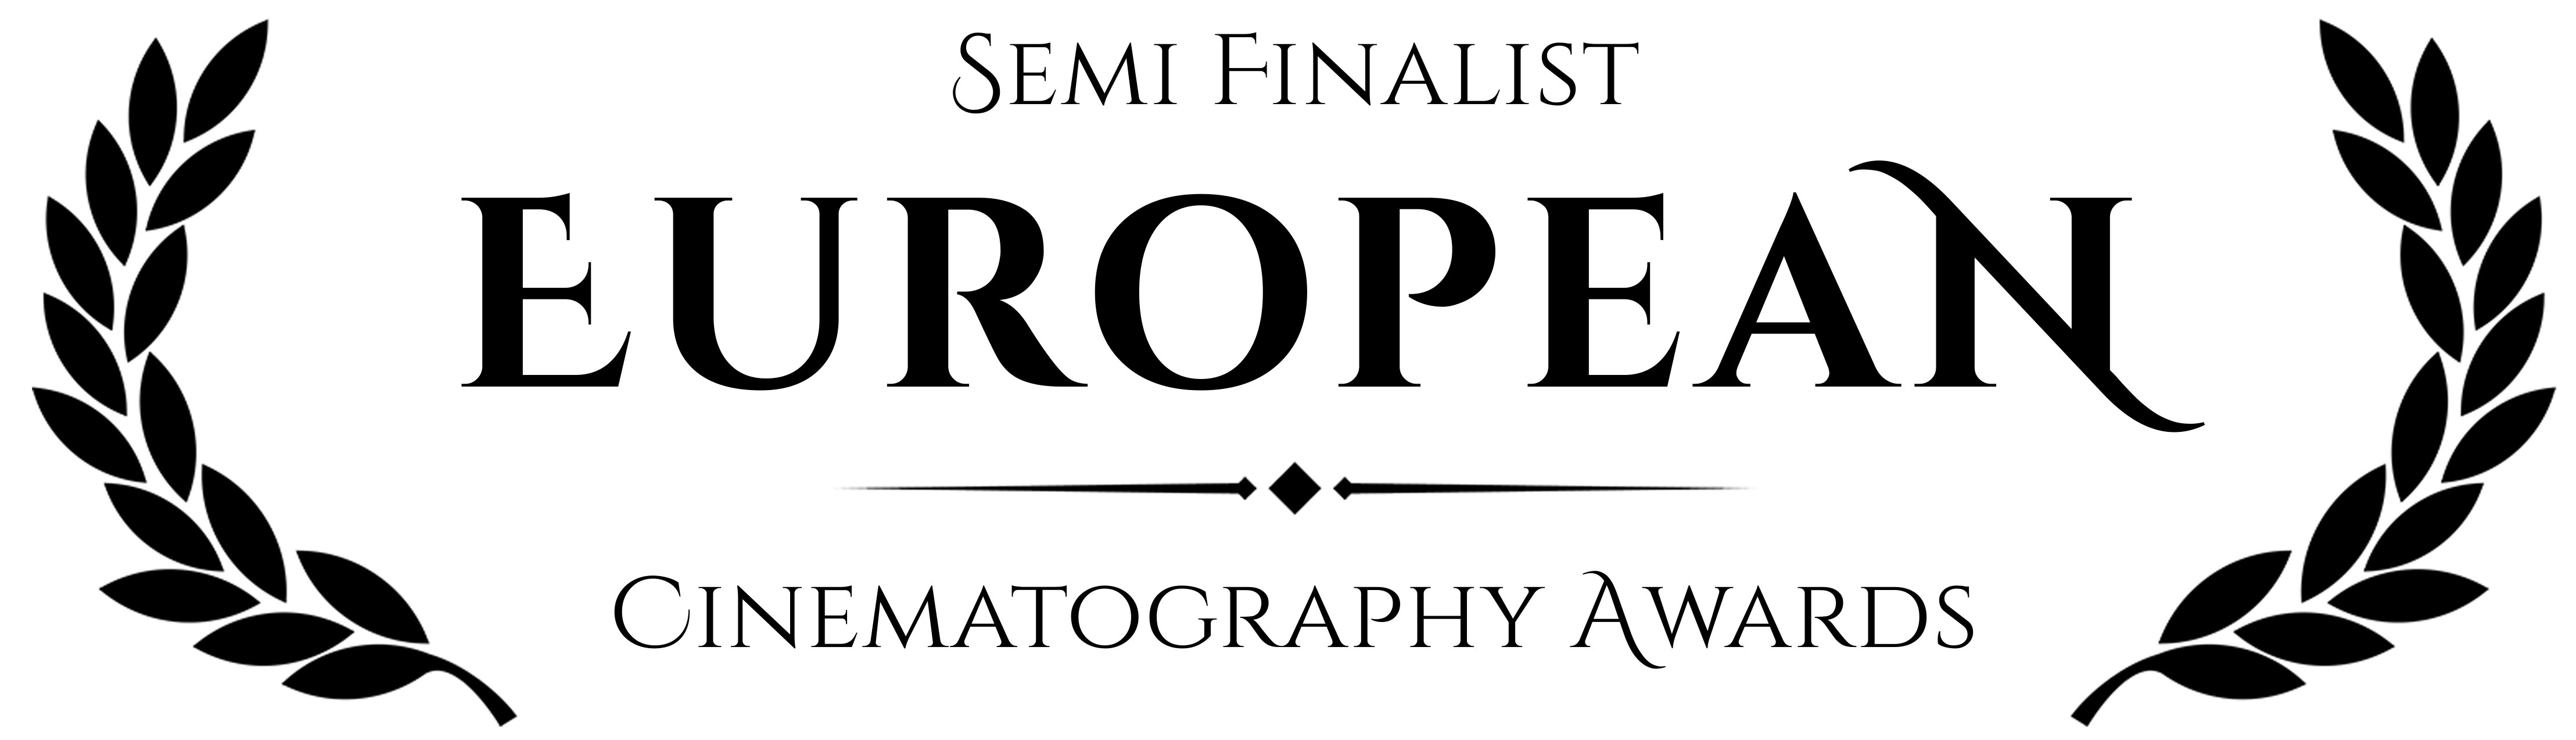 The Breakup is Semi finalist in the European Cinematography Awards